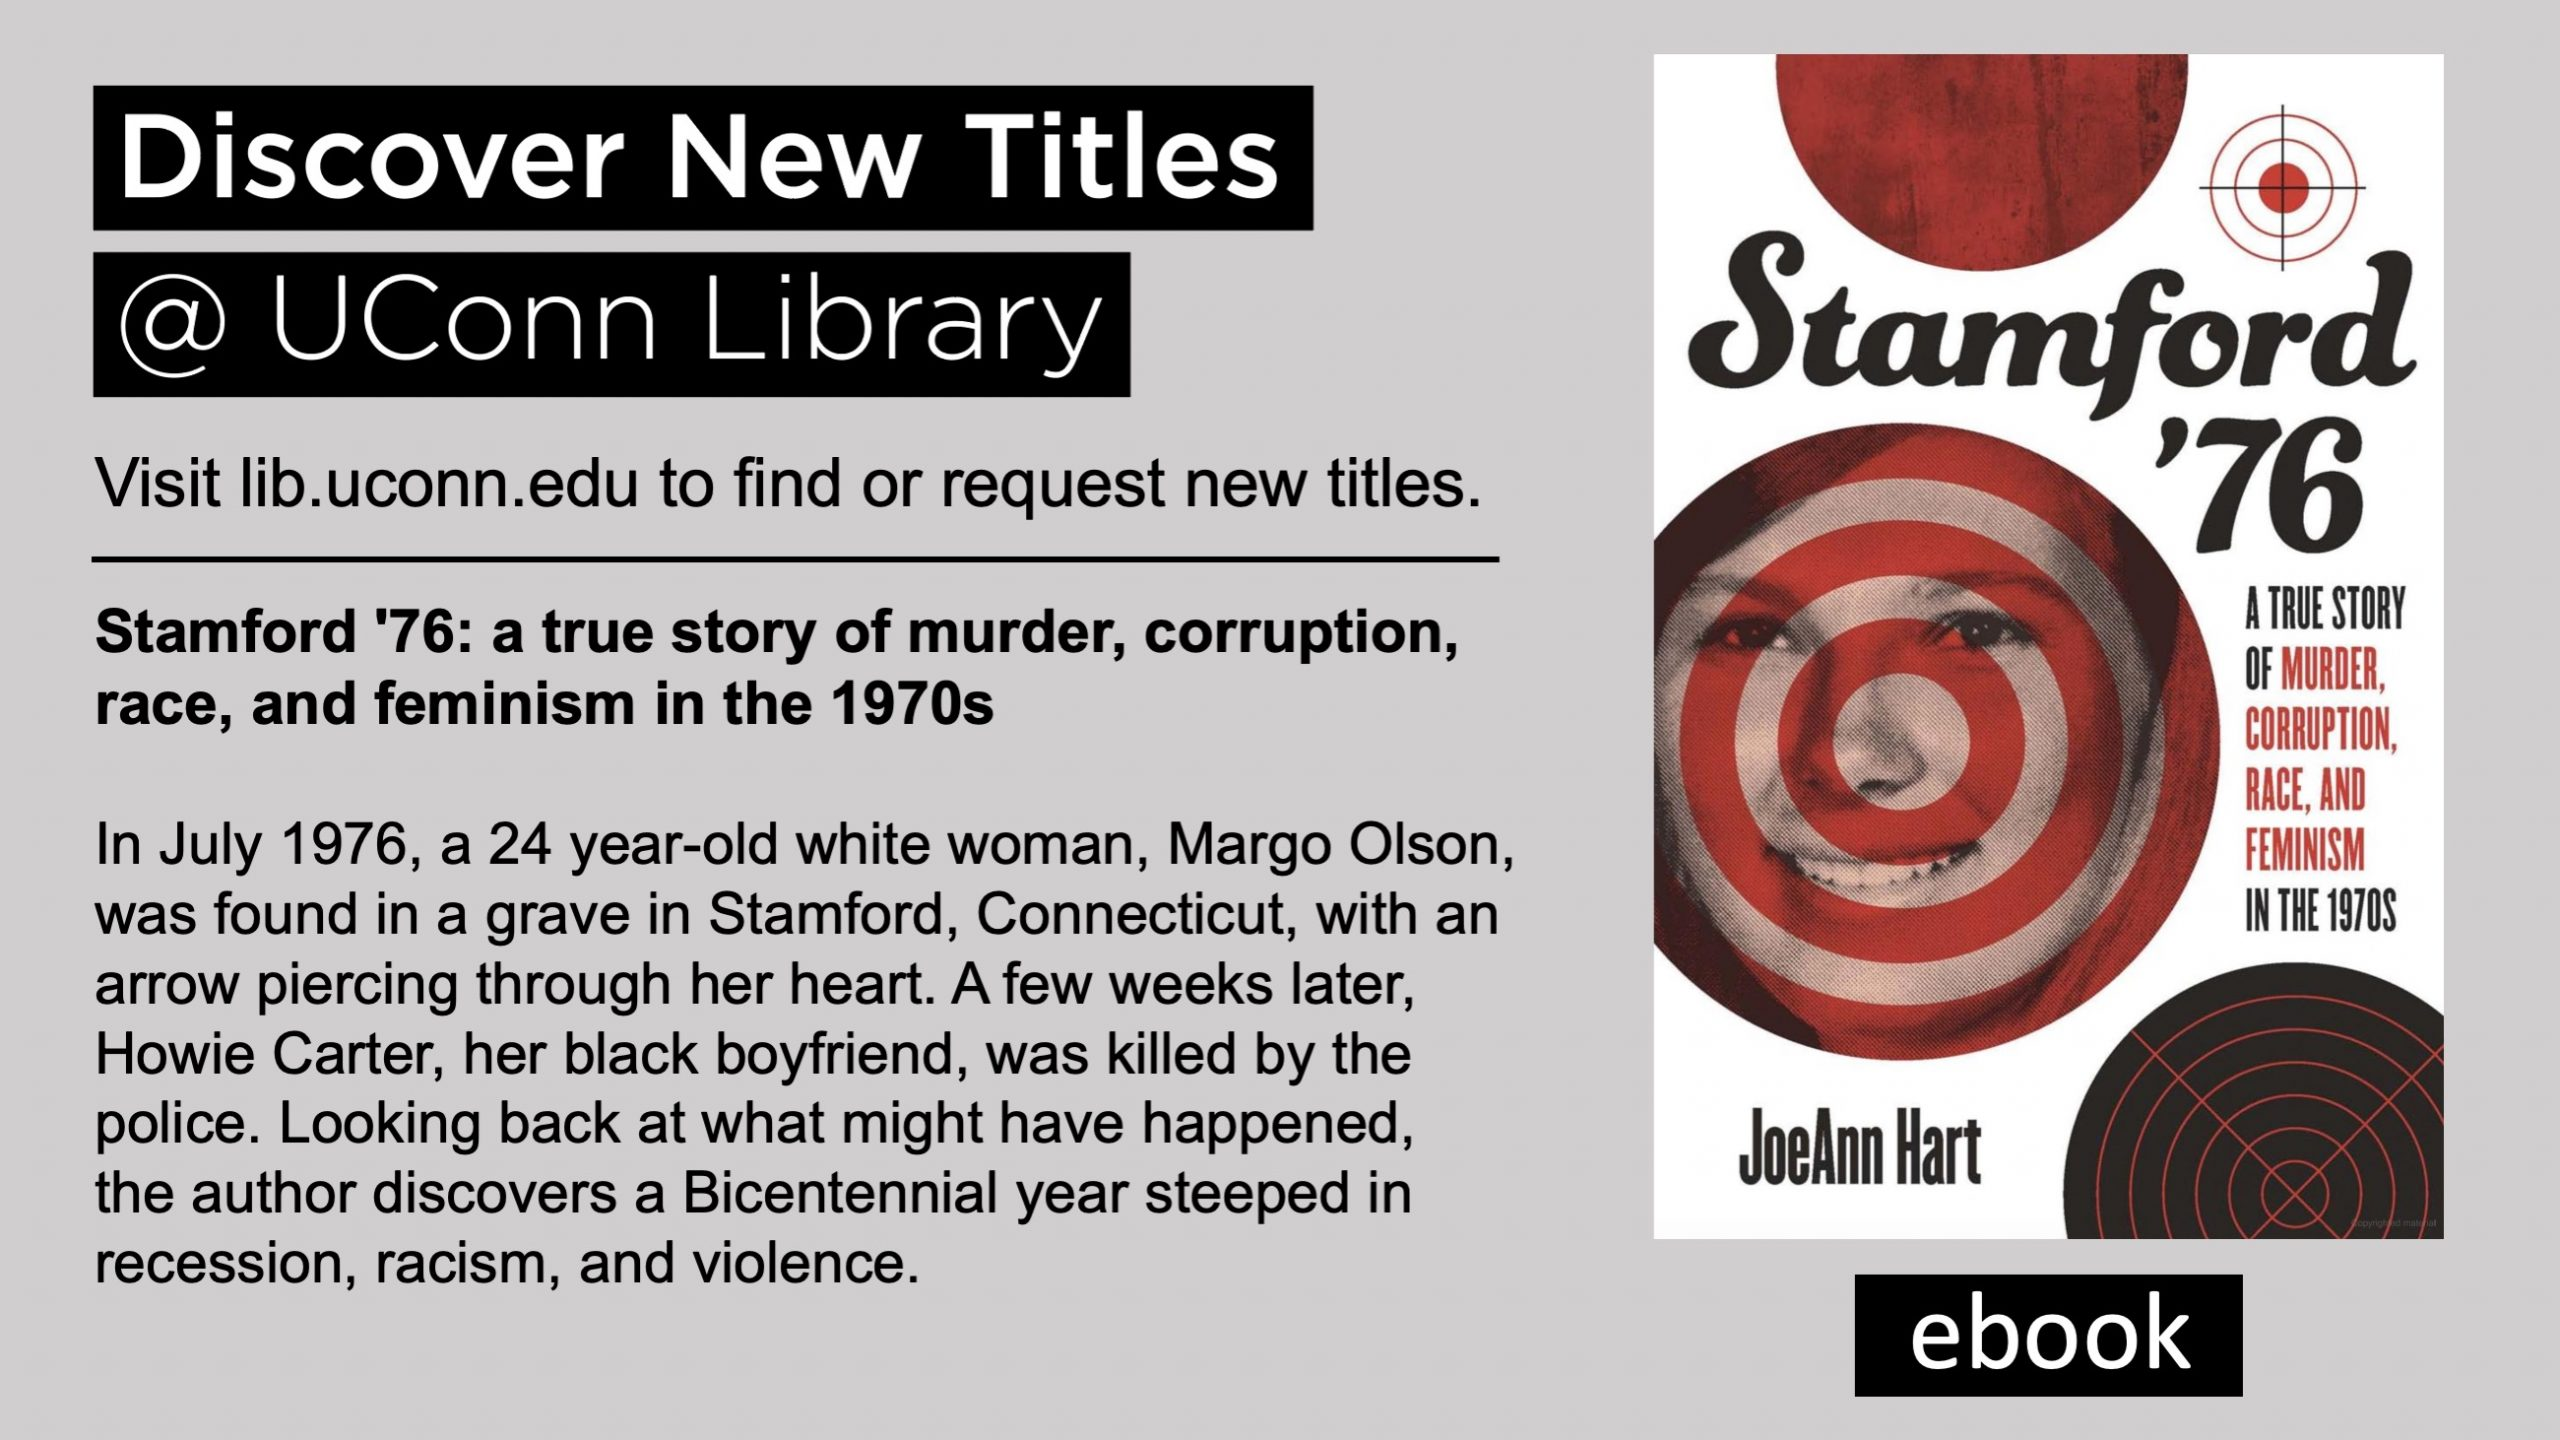 Discover New Titles @ UConn Library Visit lib.uconn.edu to find or request new titles. ebook Stamford '76: a true story of murder, corruption, race, and feminism in the 1970s In July 1976, a 24 year-old white woman, Margo Olson, was found in a grave in Stamford, Connecticut, with an arrow piercing through her heart. A few weeks later, Howie Carter, her black boyfriend, was killed by the police. Looking back at what might have happened, the author discovers a Bicentennial year steeped in recession, racism, and violence.